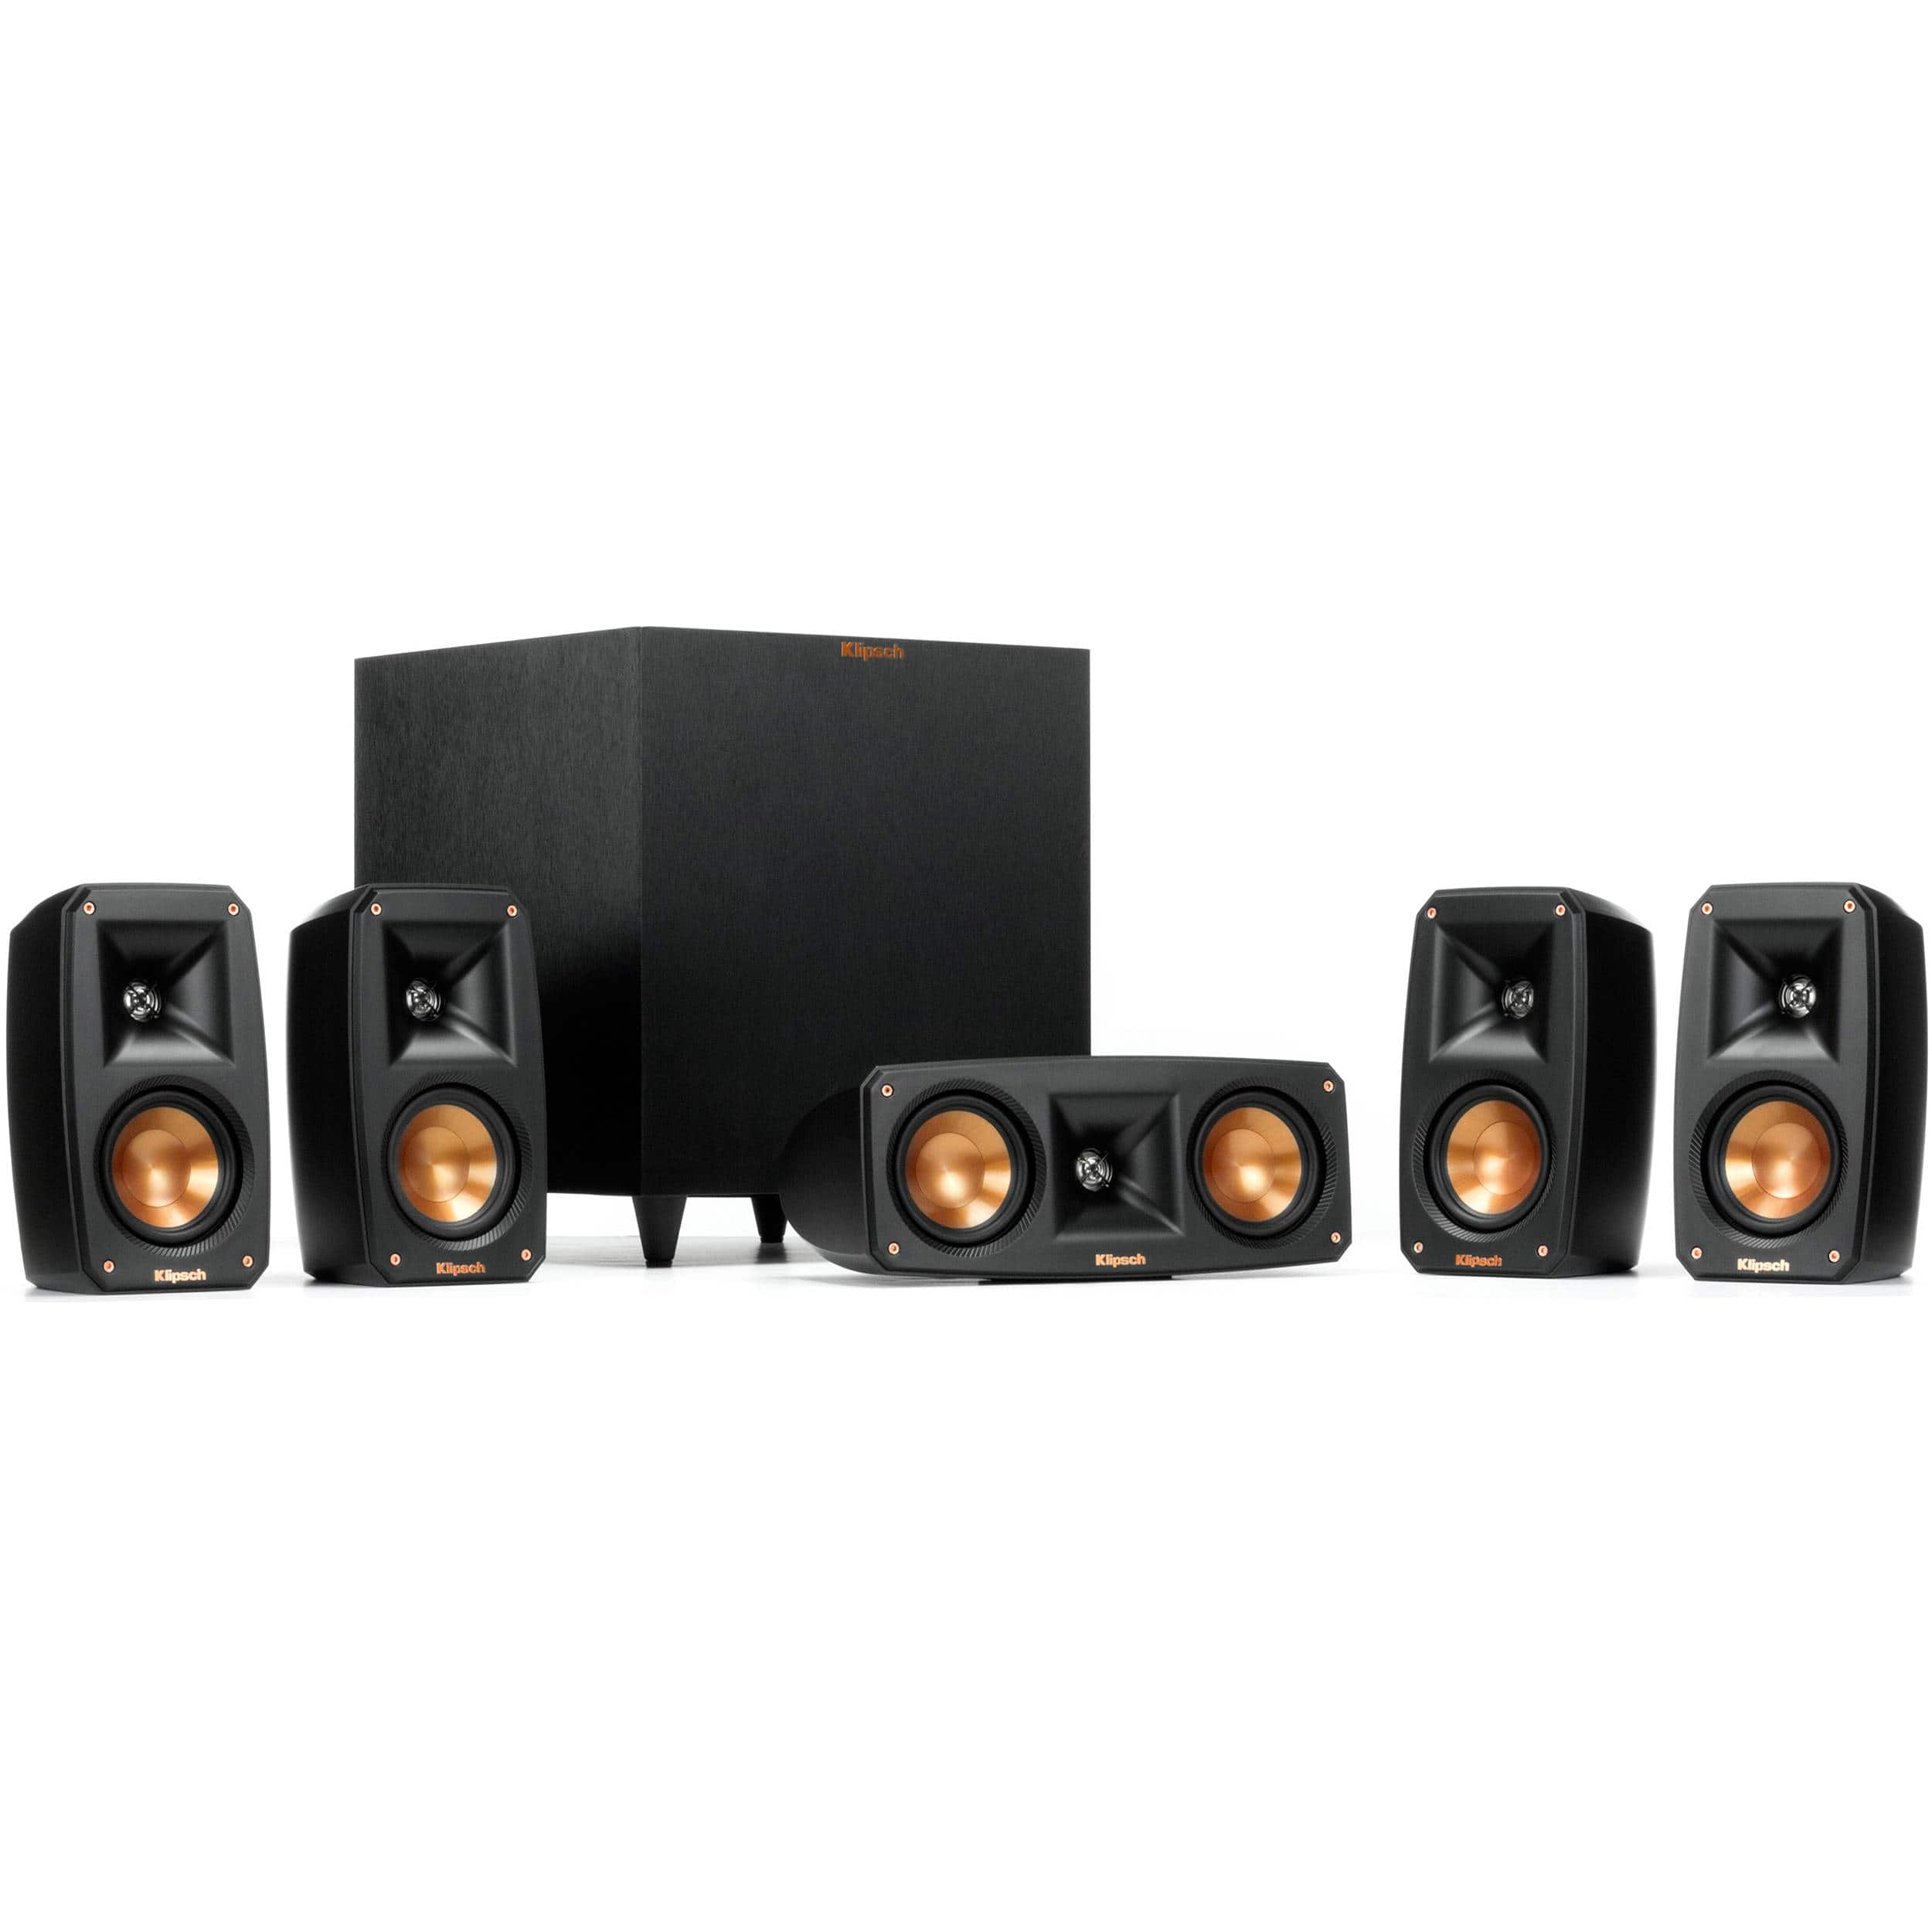 Klipsch Reference Theater Pack 5.1 Channel Surround Sound System $349.99